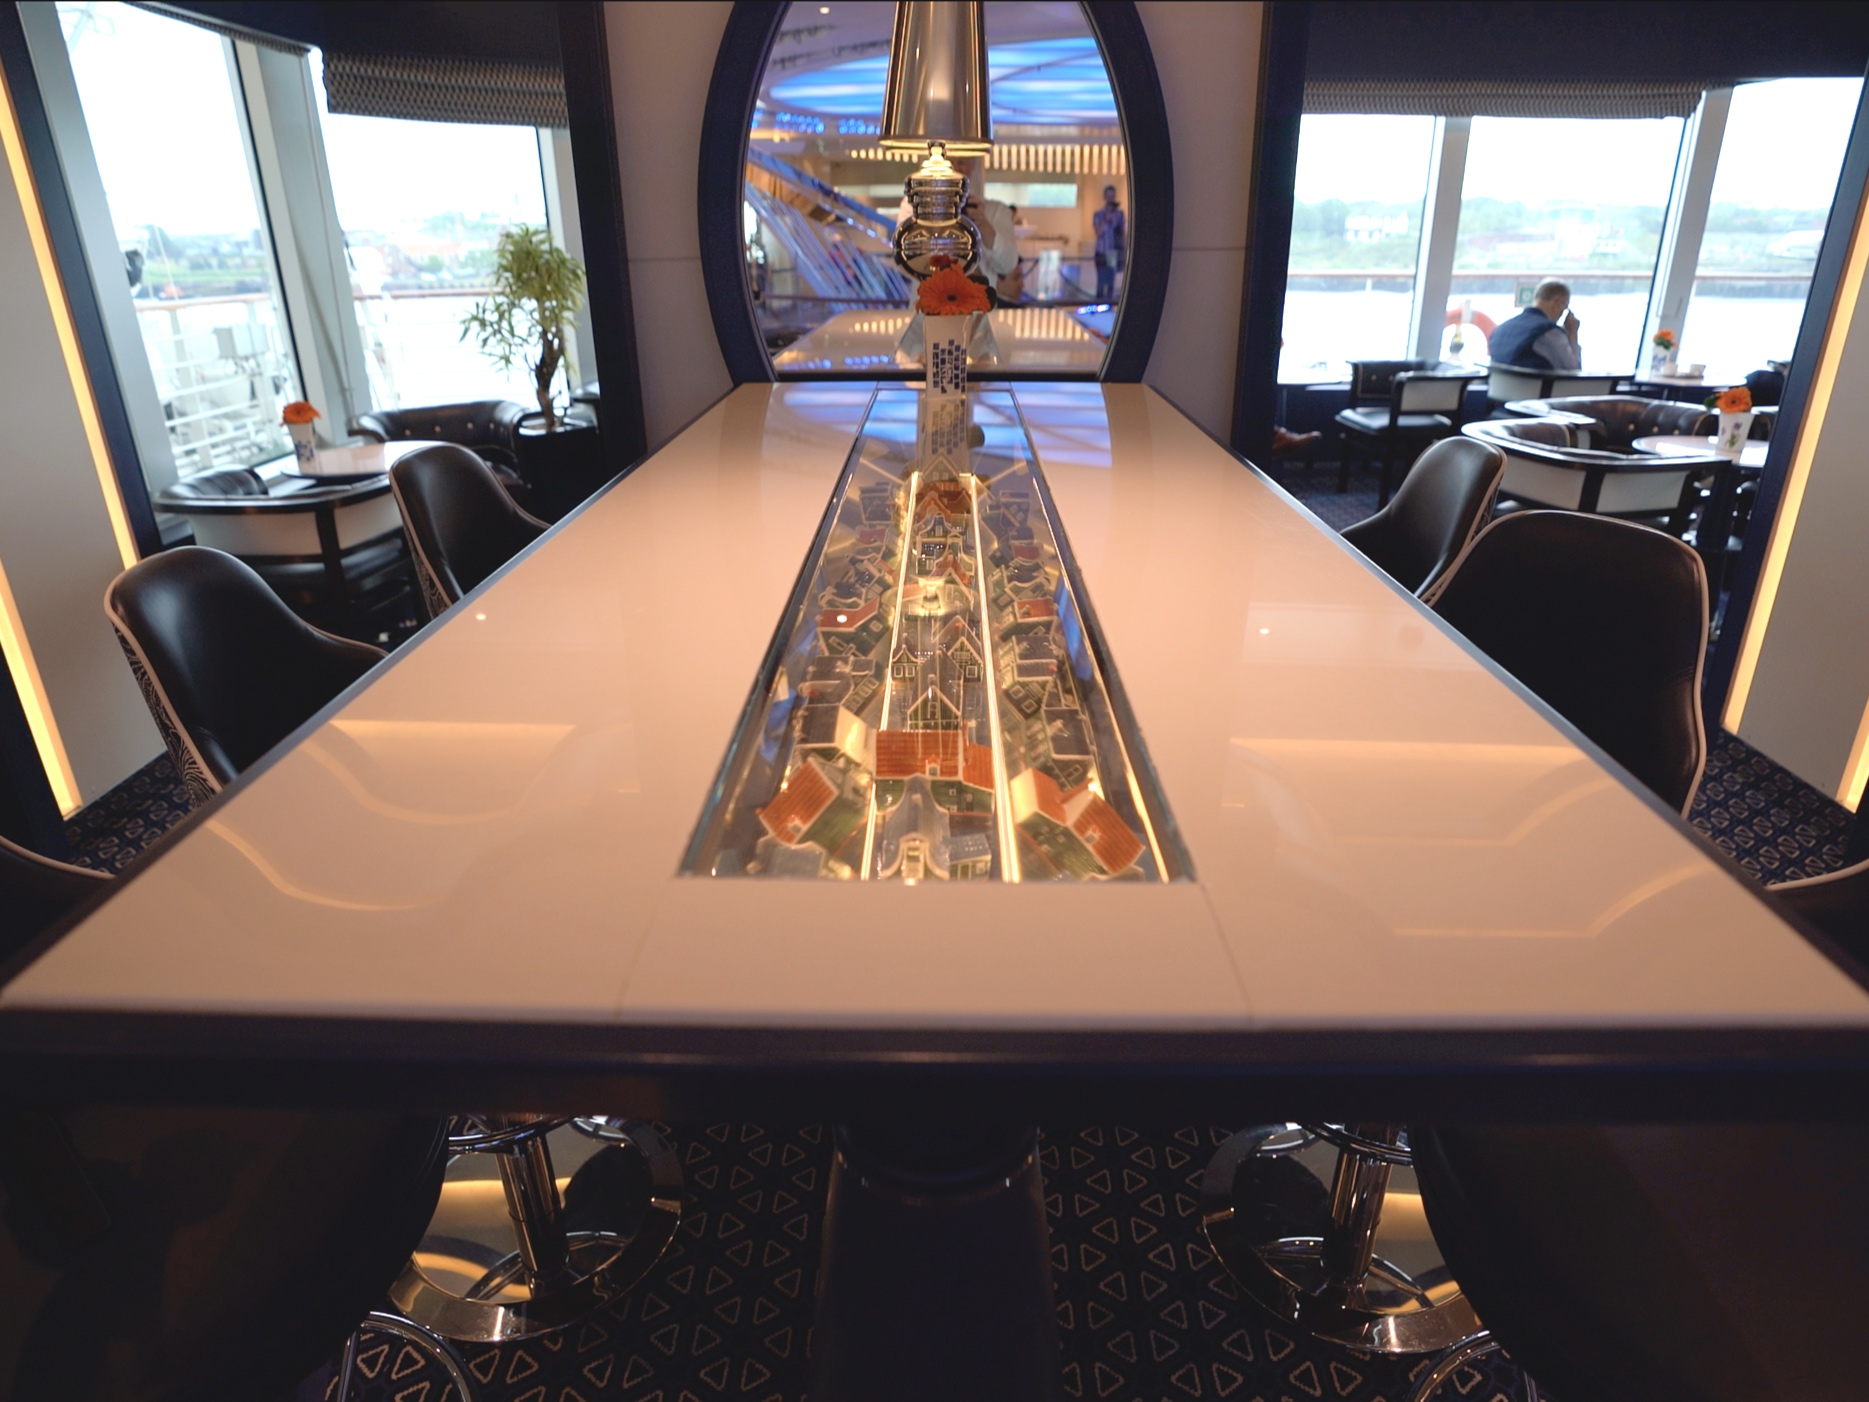 There's so much artwork on this ship, its even in the tabletops.